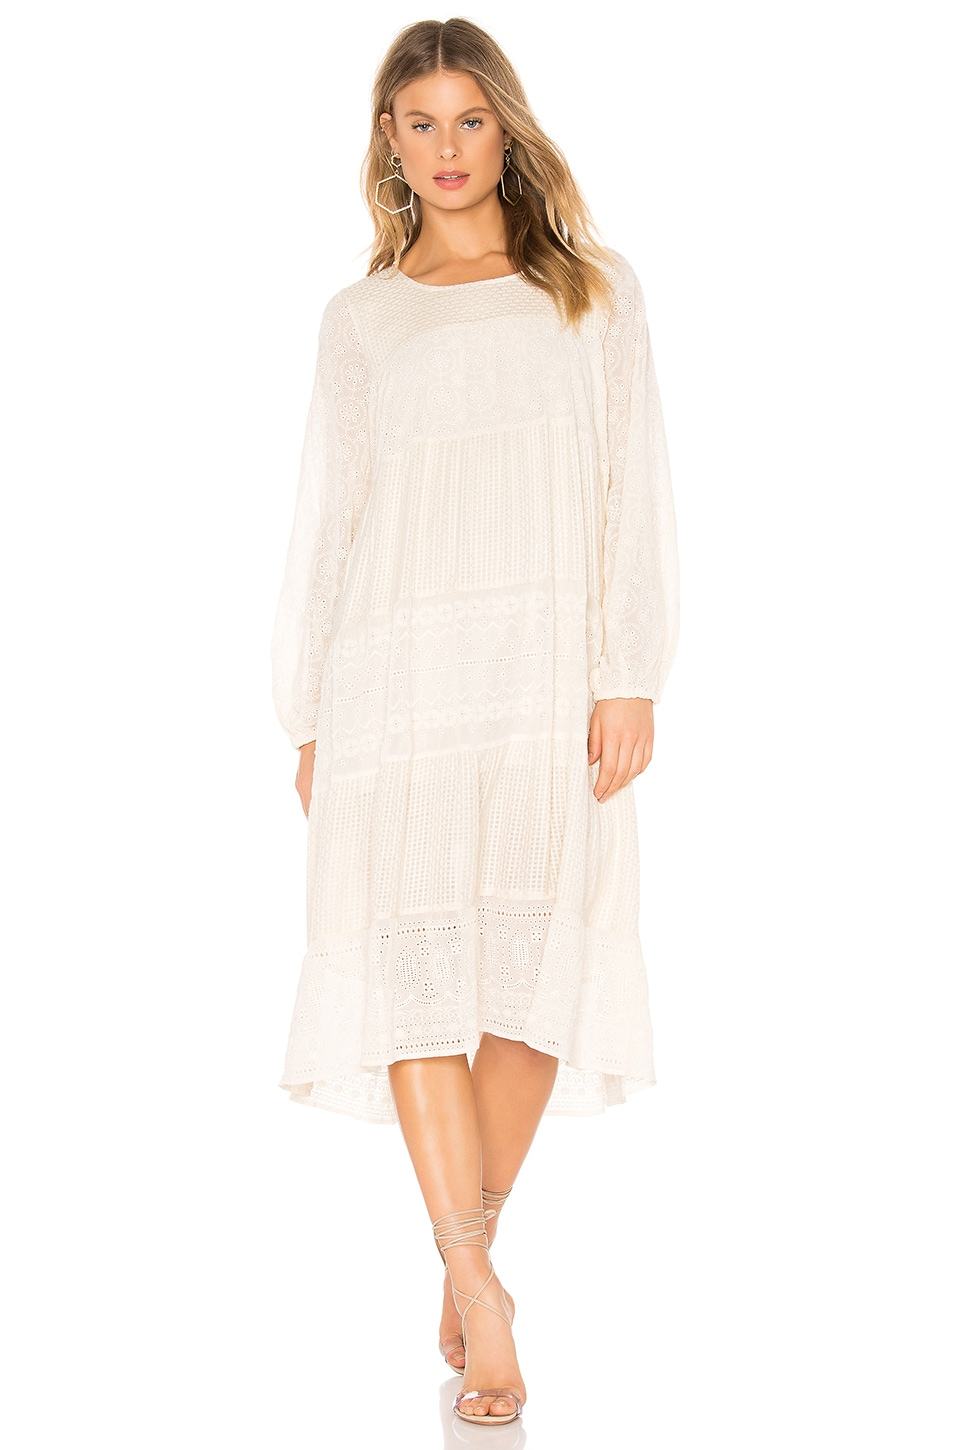 Free People Gemma Midi Dress in Cream